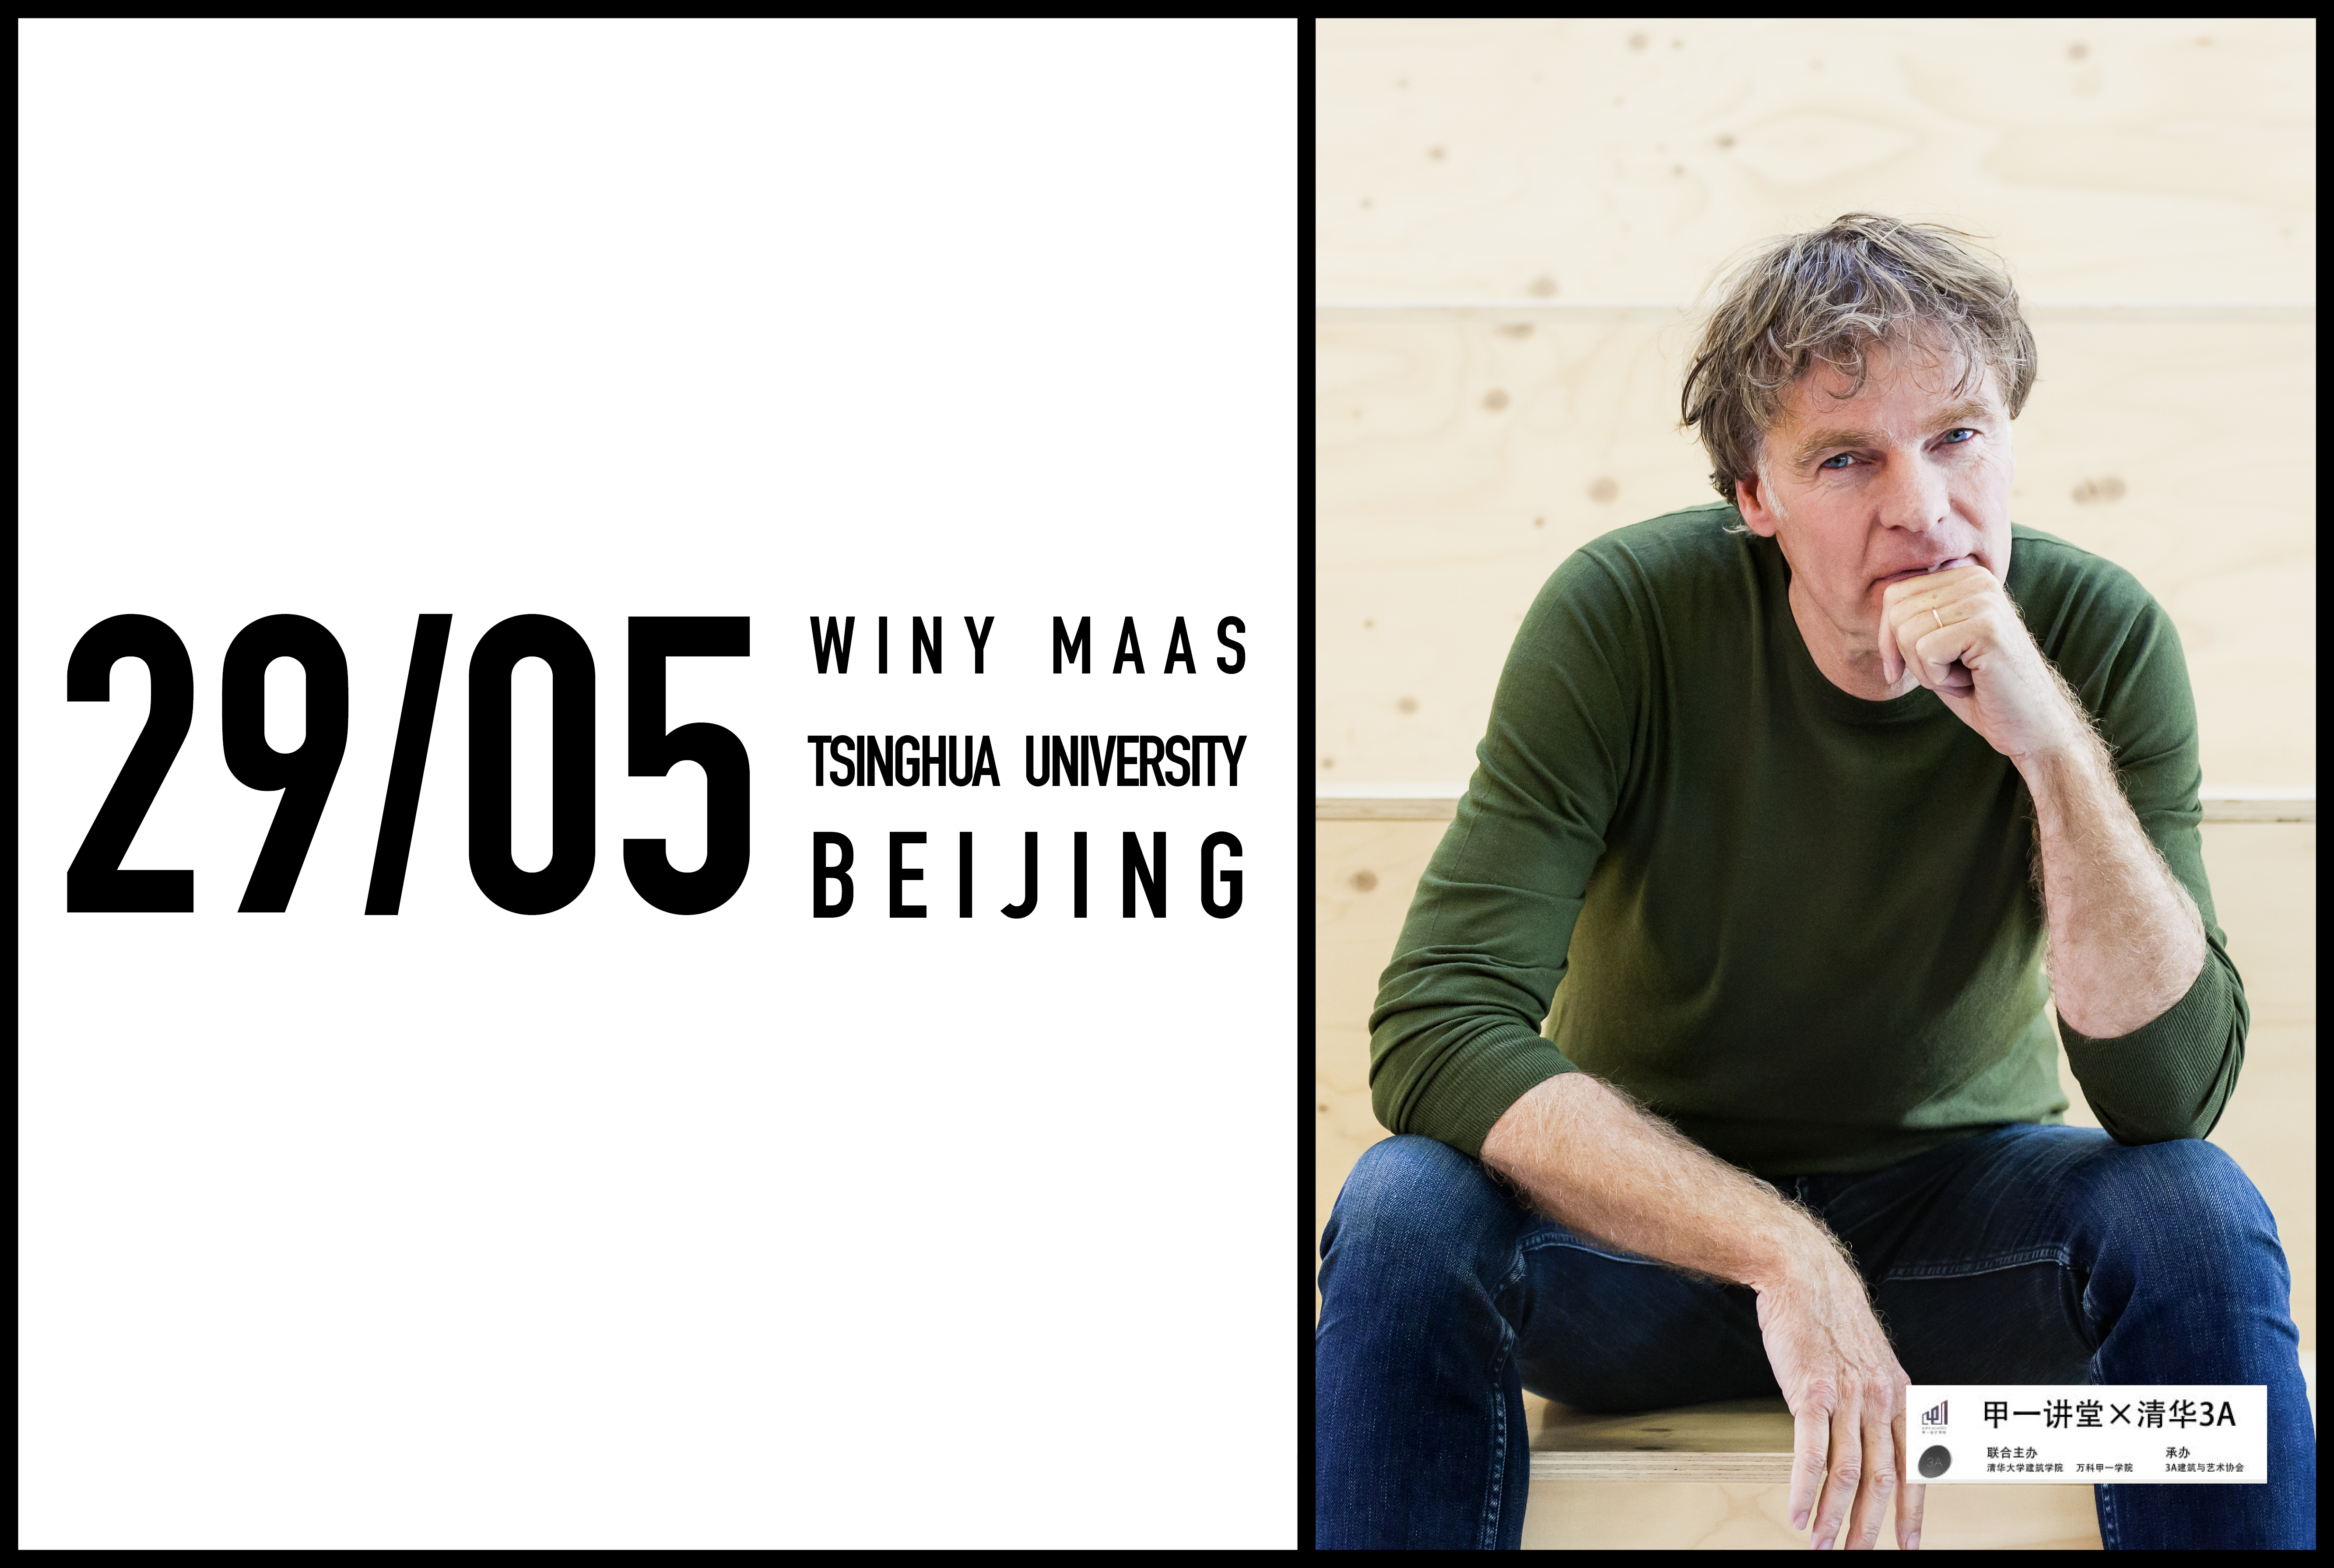 Winy Maas to speak at Tsinghua University